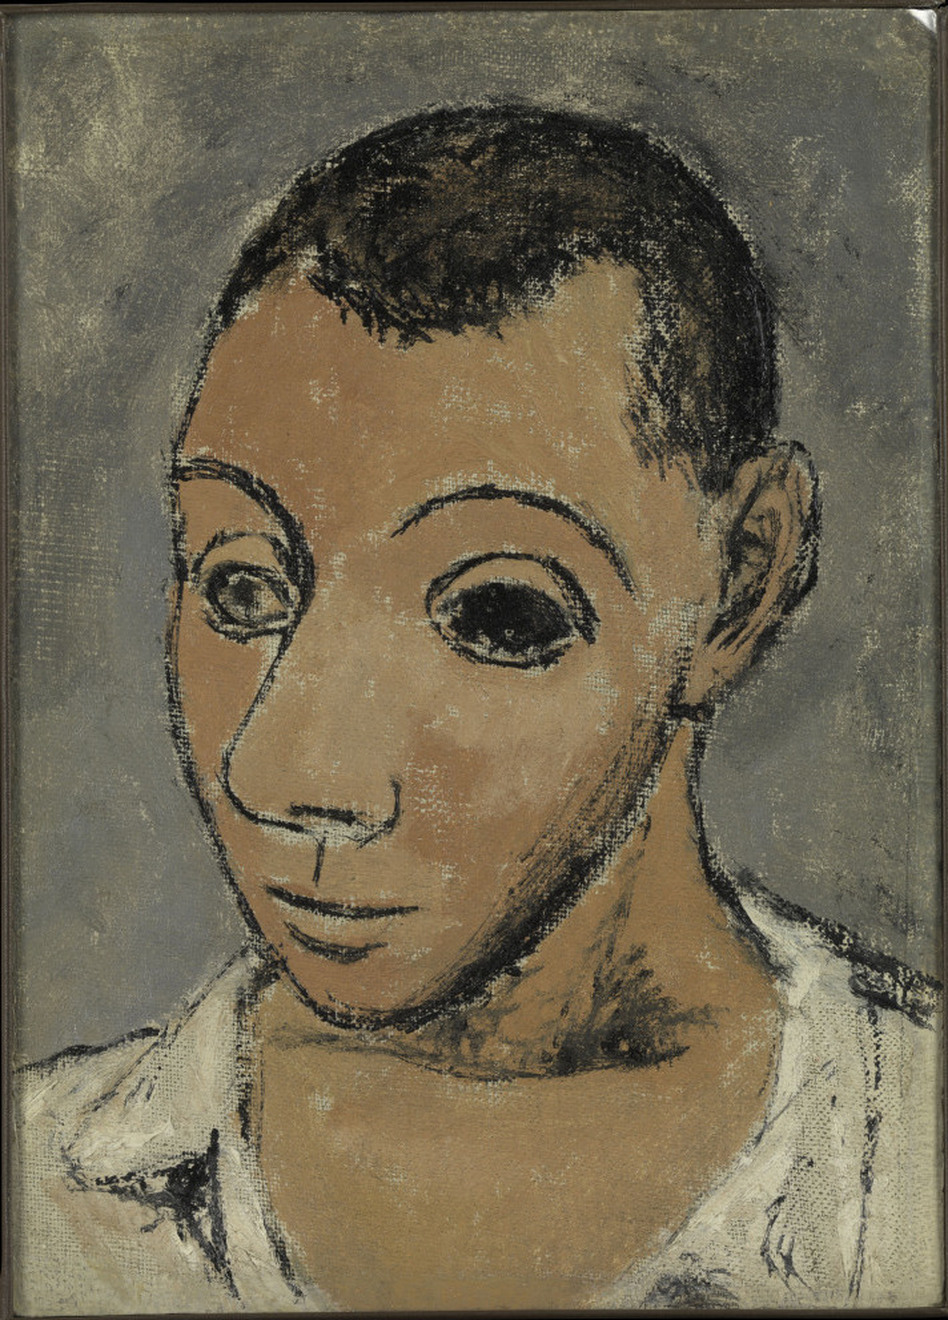 At the Steins' apartment, Picasso saw the portrait in which Cezanne had painted his wife's eye black. Picasso tried the technique for himself in this 1906 self-portrait. (Metropolitan Museum of Art)